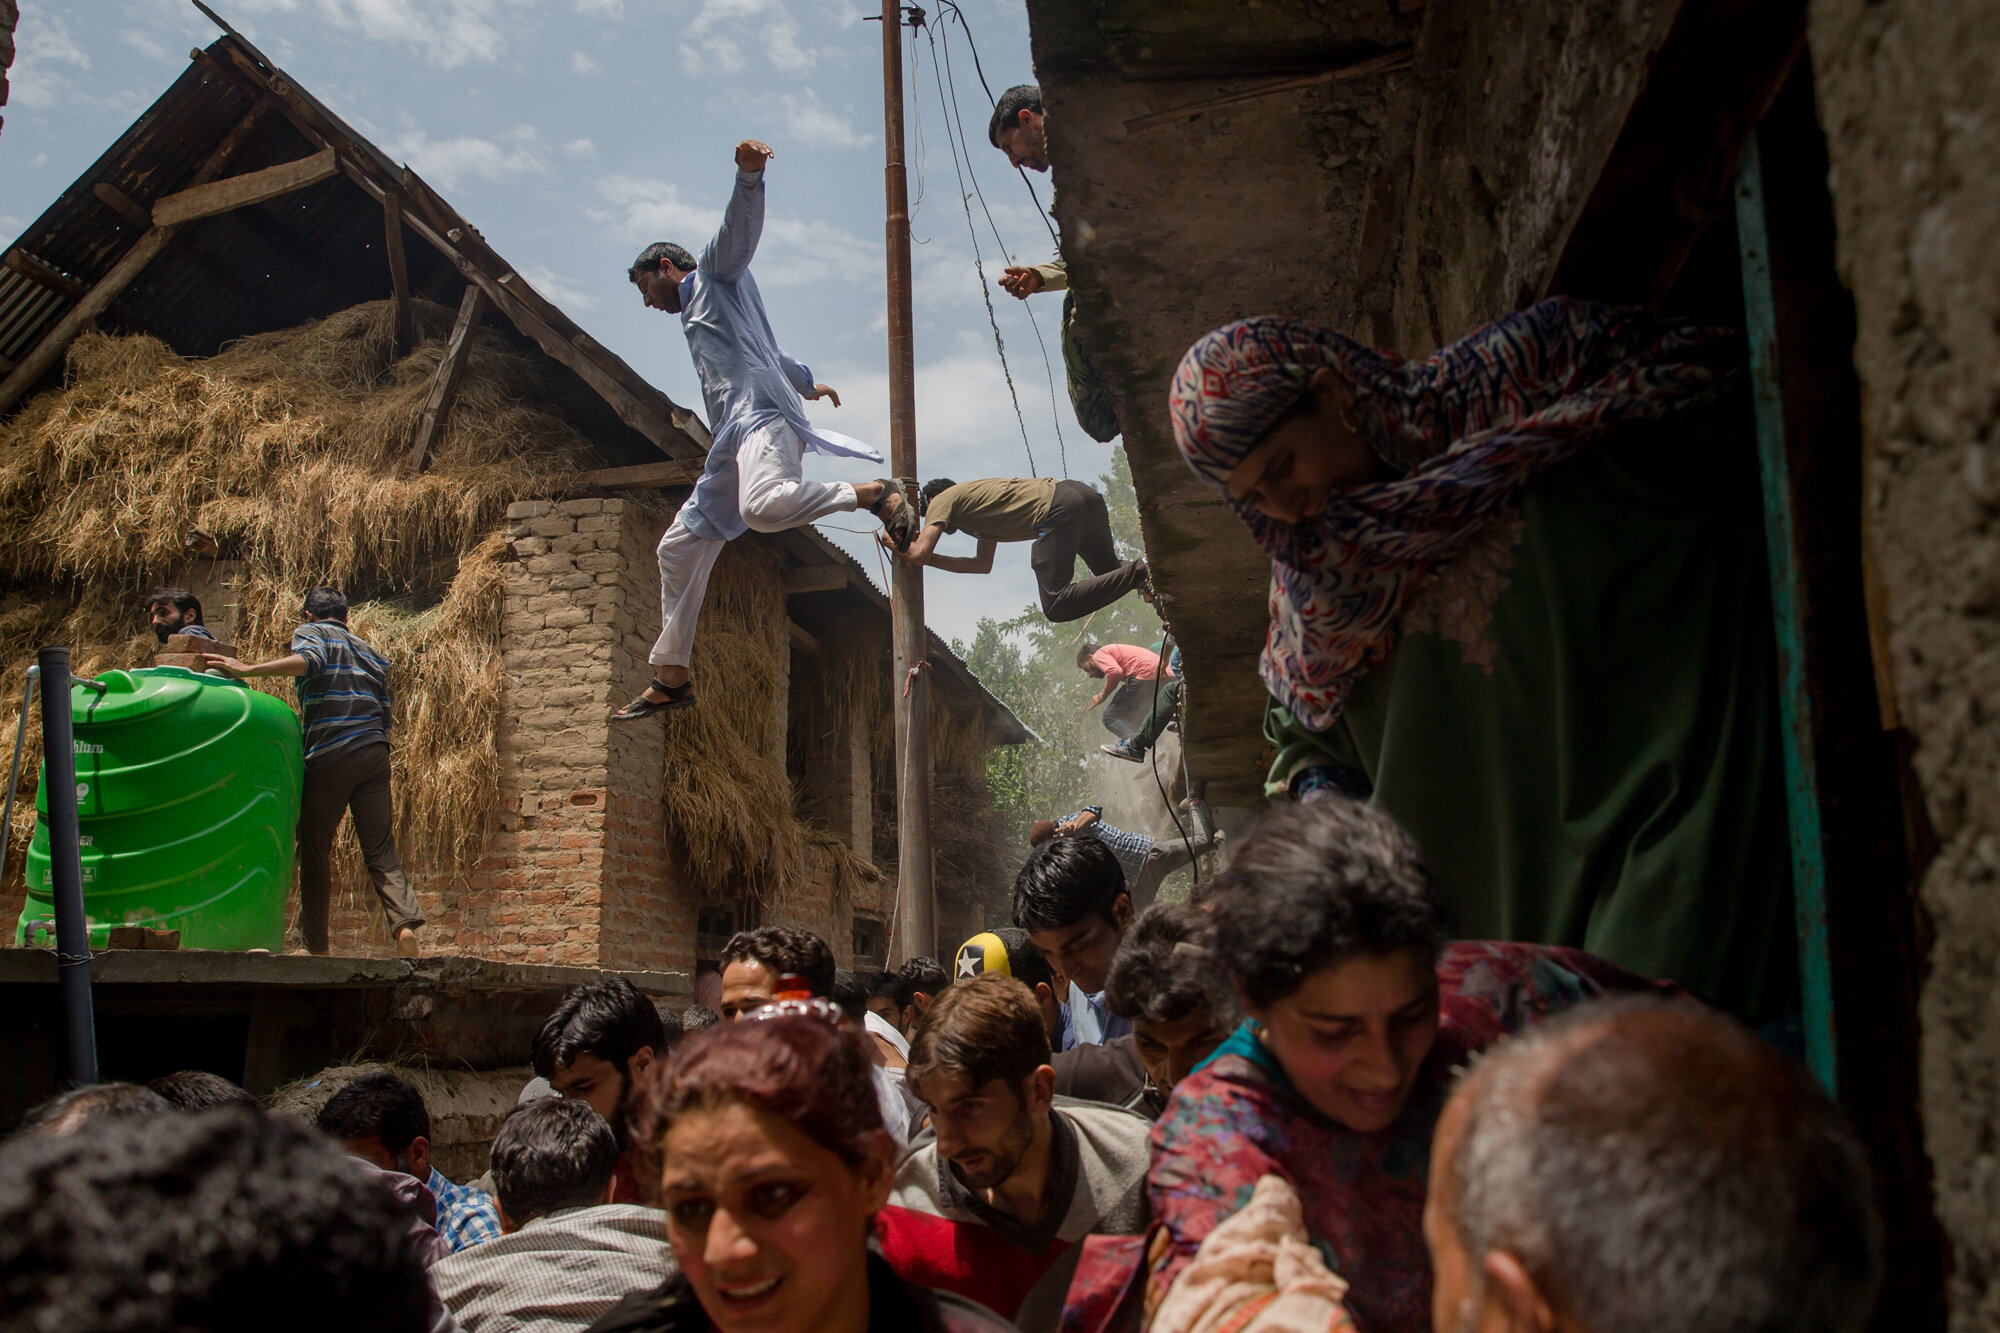 Kashmiri villagers inspecting a home broken in a gun battle flee from it after listening to rumors of Indian military troopers returning again to the positioning, which turned out to be false, in Kundalan village, some 60 kilometers (37 miles) south of Srinagar, Indian managed Kashmir, July, 10, 2018. (AP Photo/Dar Yasin)